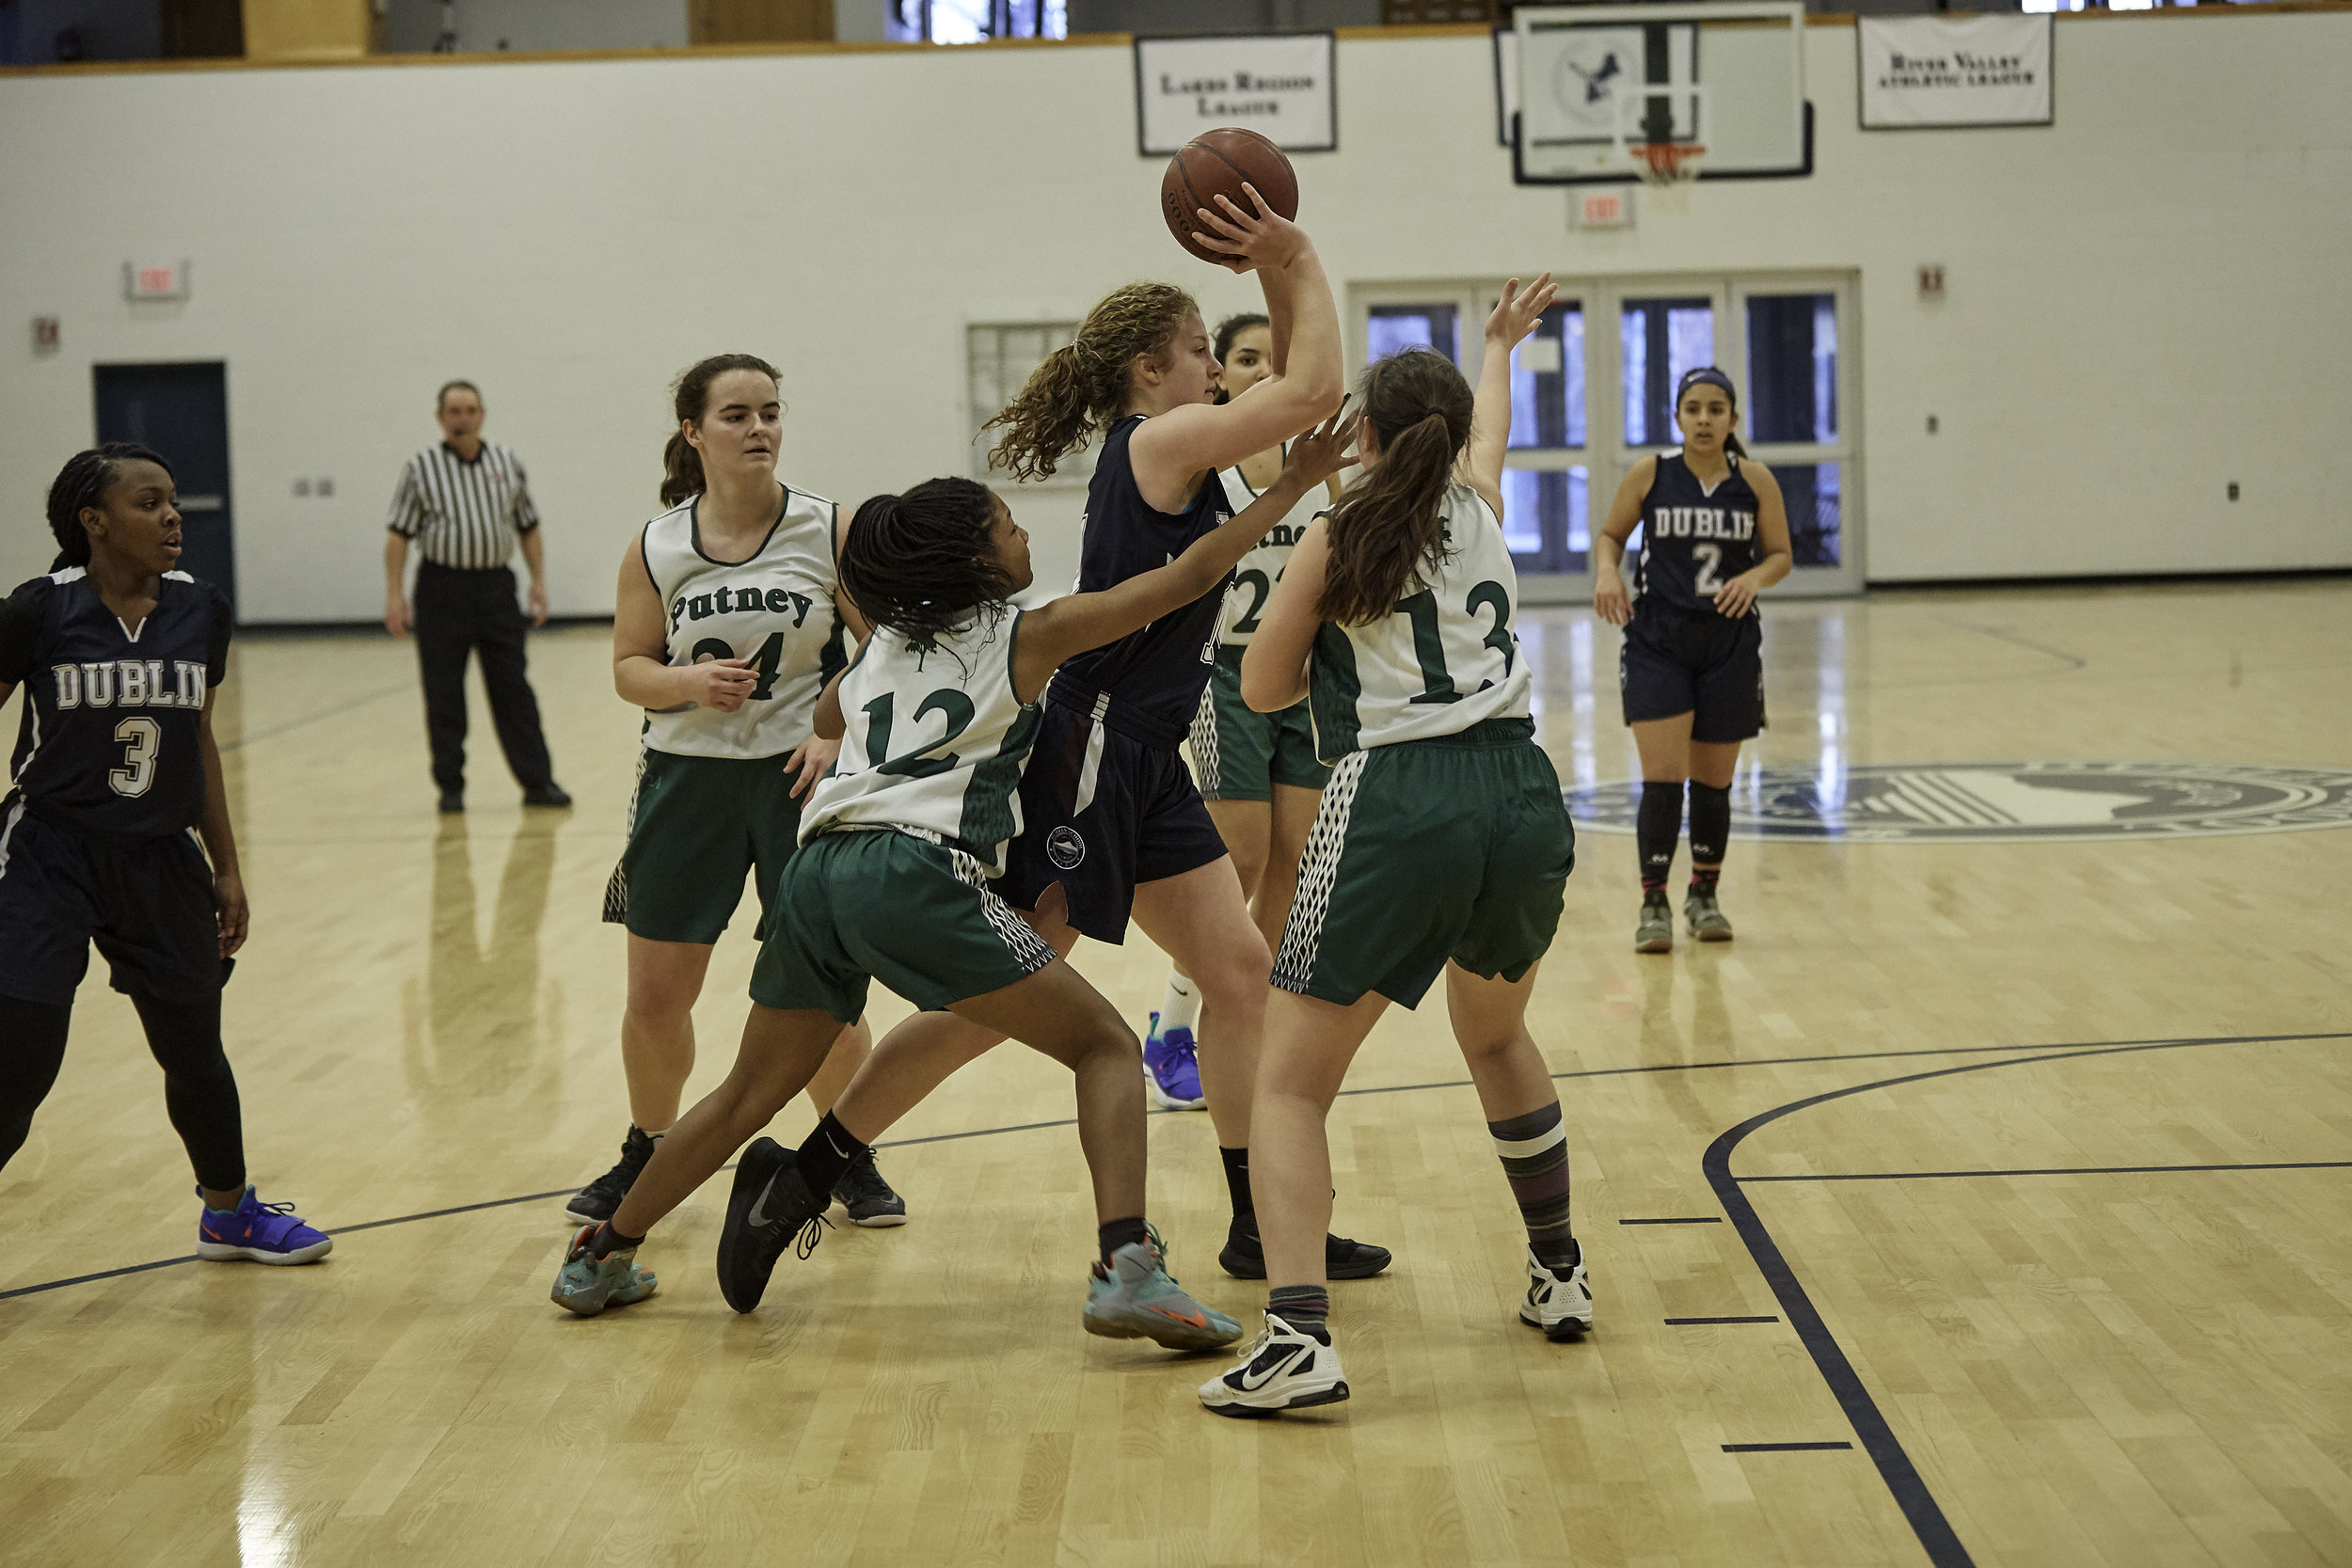 Basketball vs Putney School, February 9, 2019 - 167439.jpg